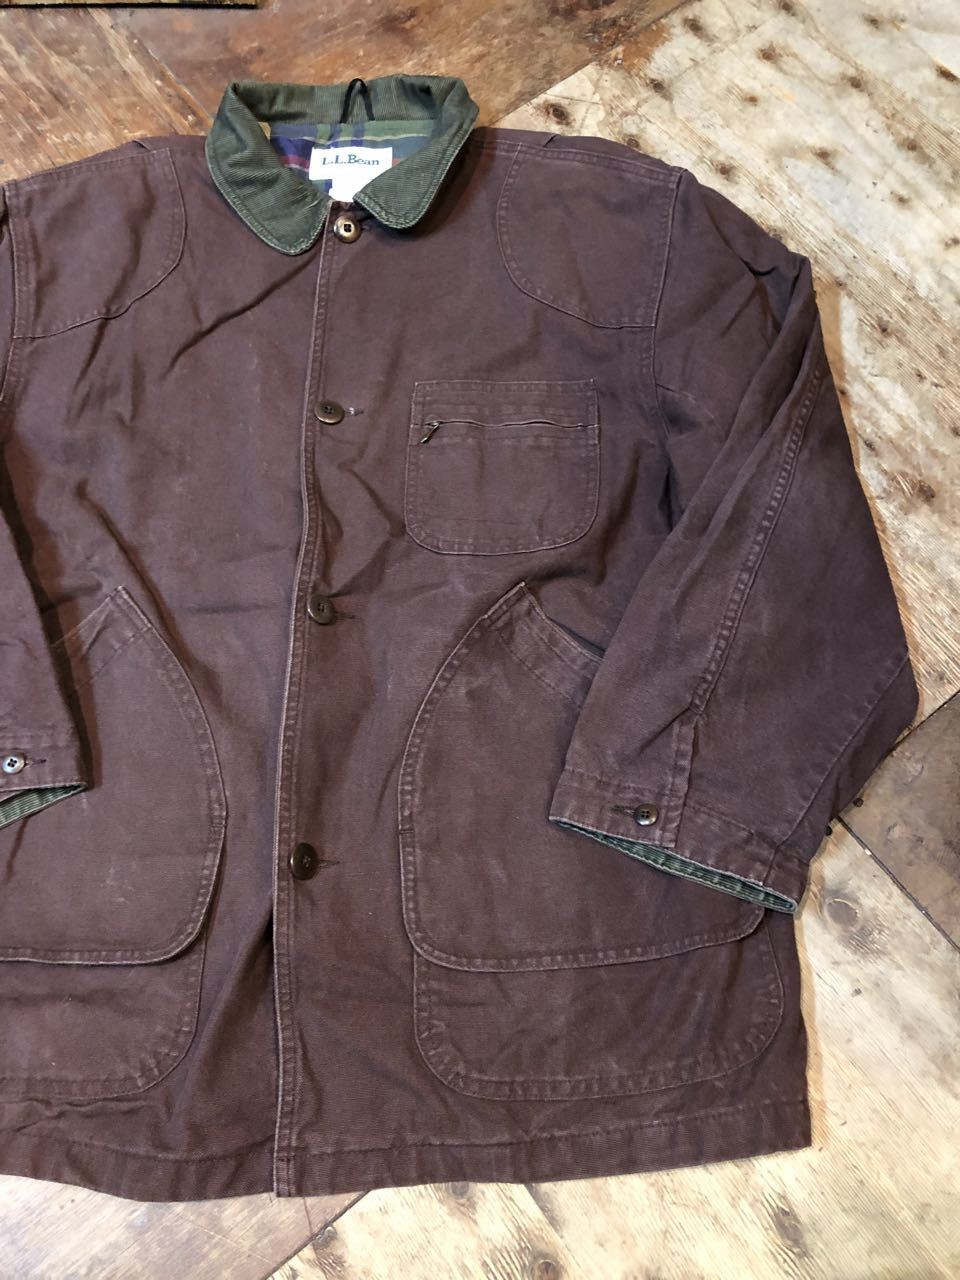 11月9日(土)入荷!L.L BEAN MADE IN U.S.A  HUNTING JACKET !_c0144020_13423206.jpg